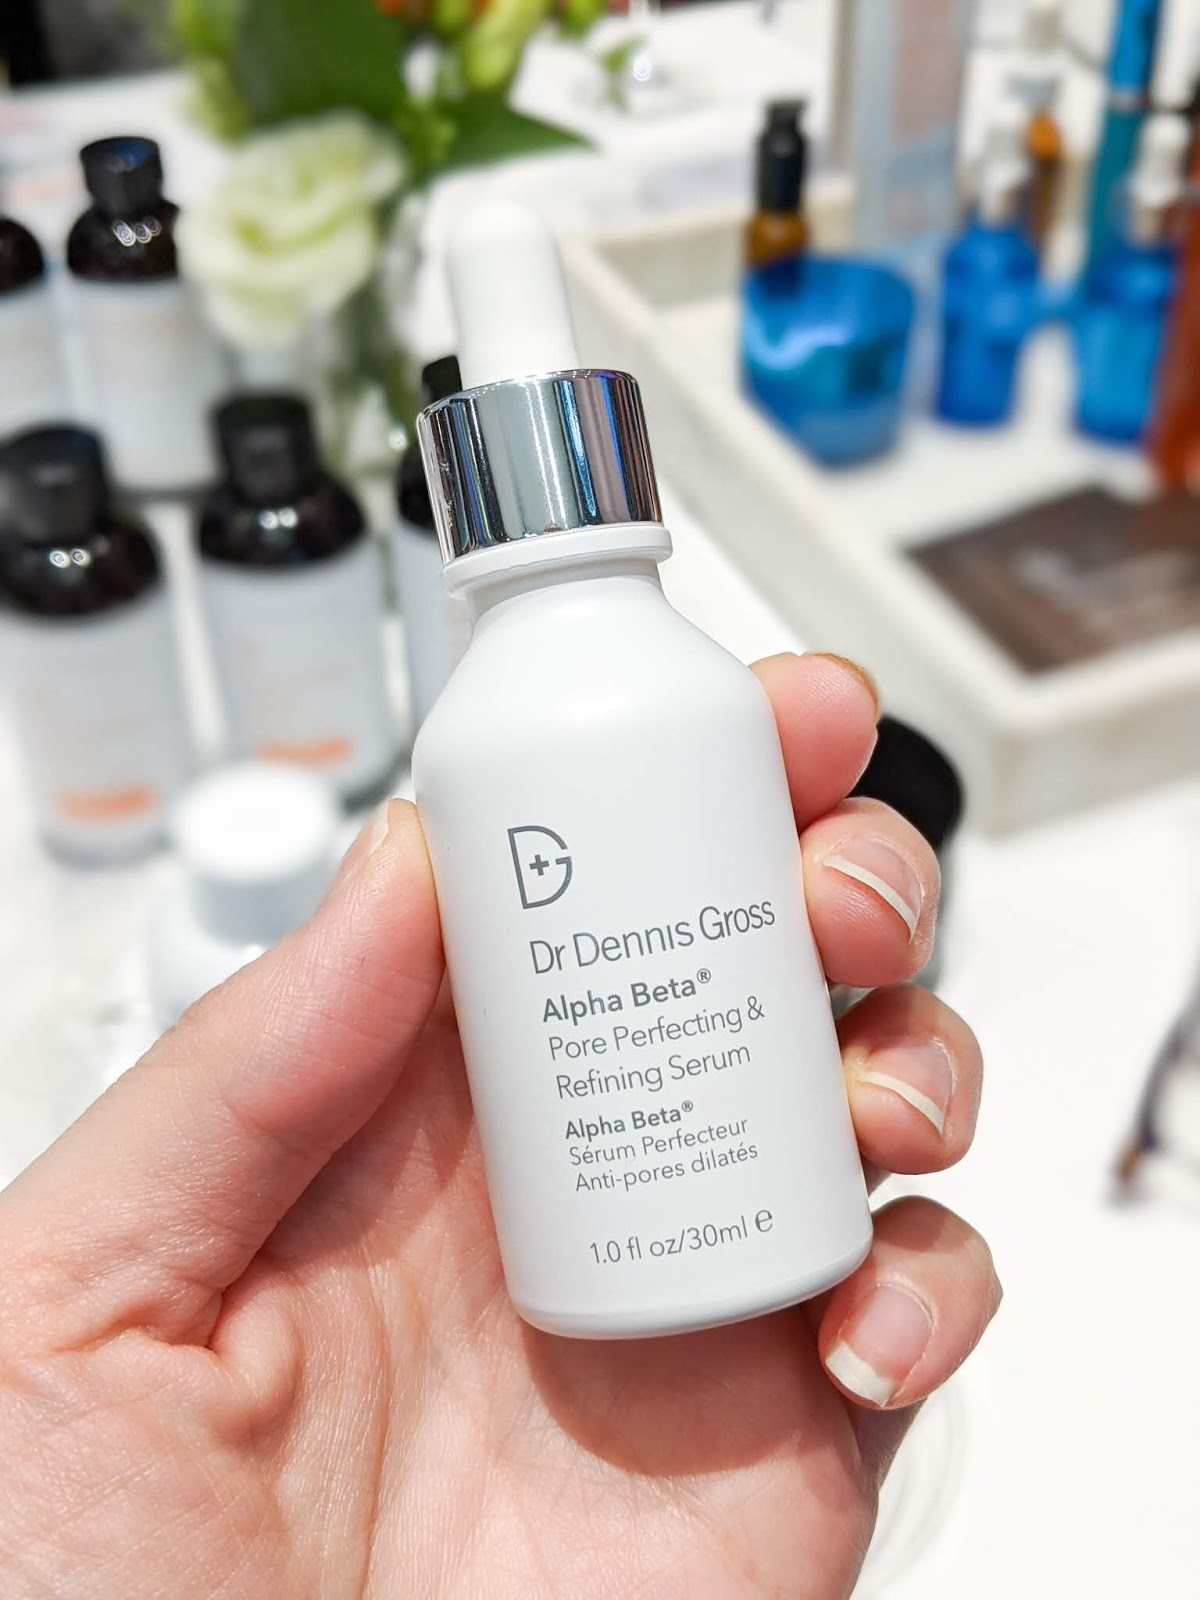 Dr_Dennis_Gross_Pore_Perfecting_Refining_Serum